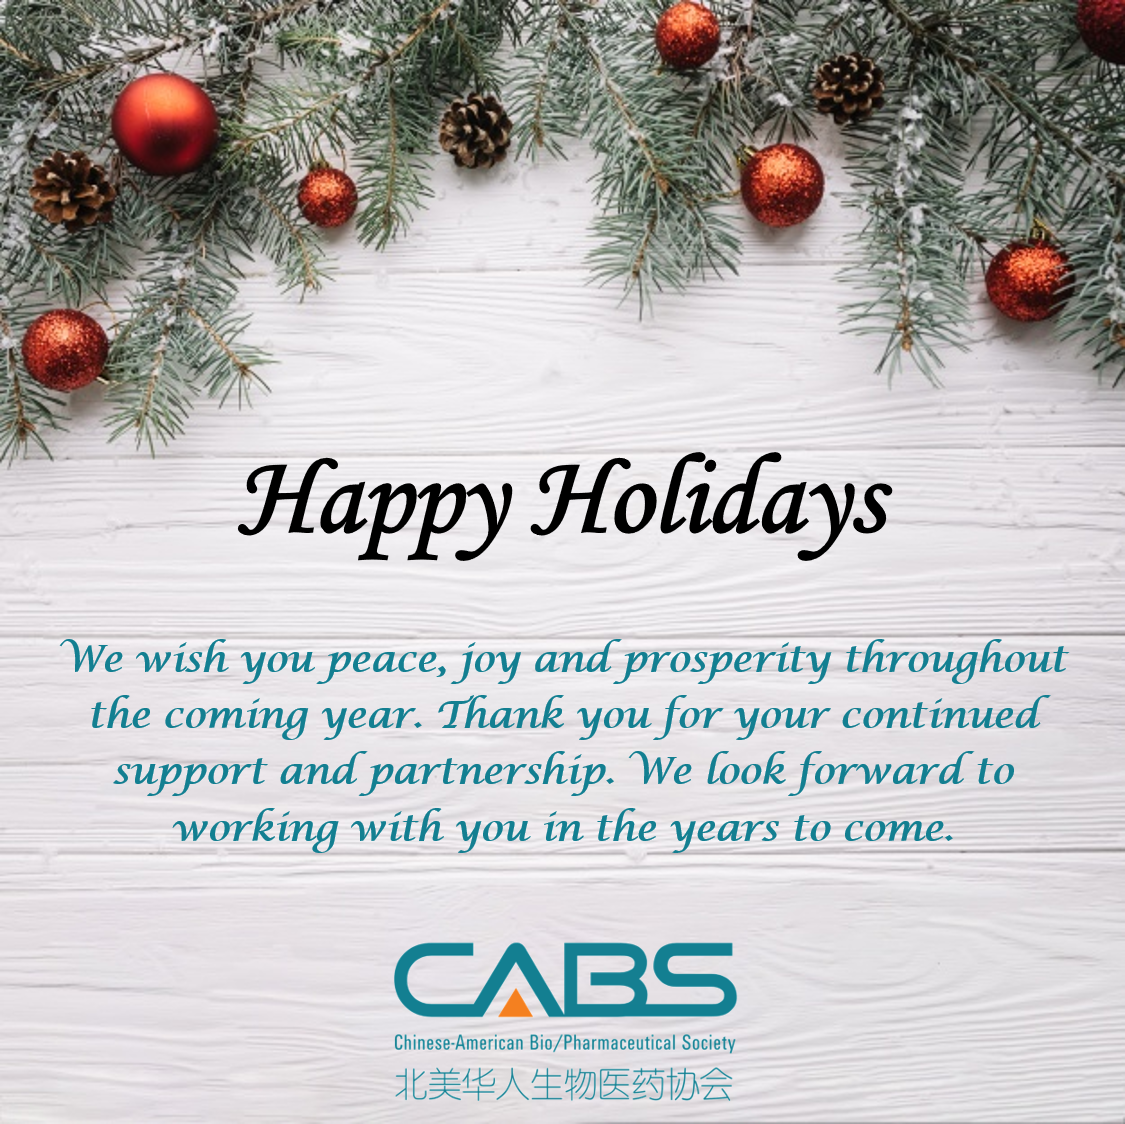 Happy Holiday from CABS!